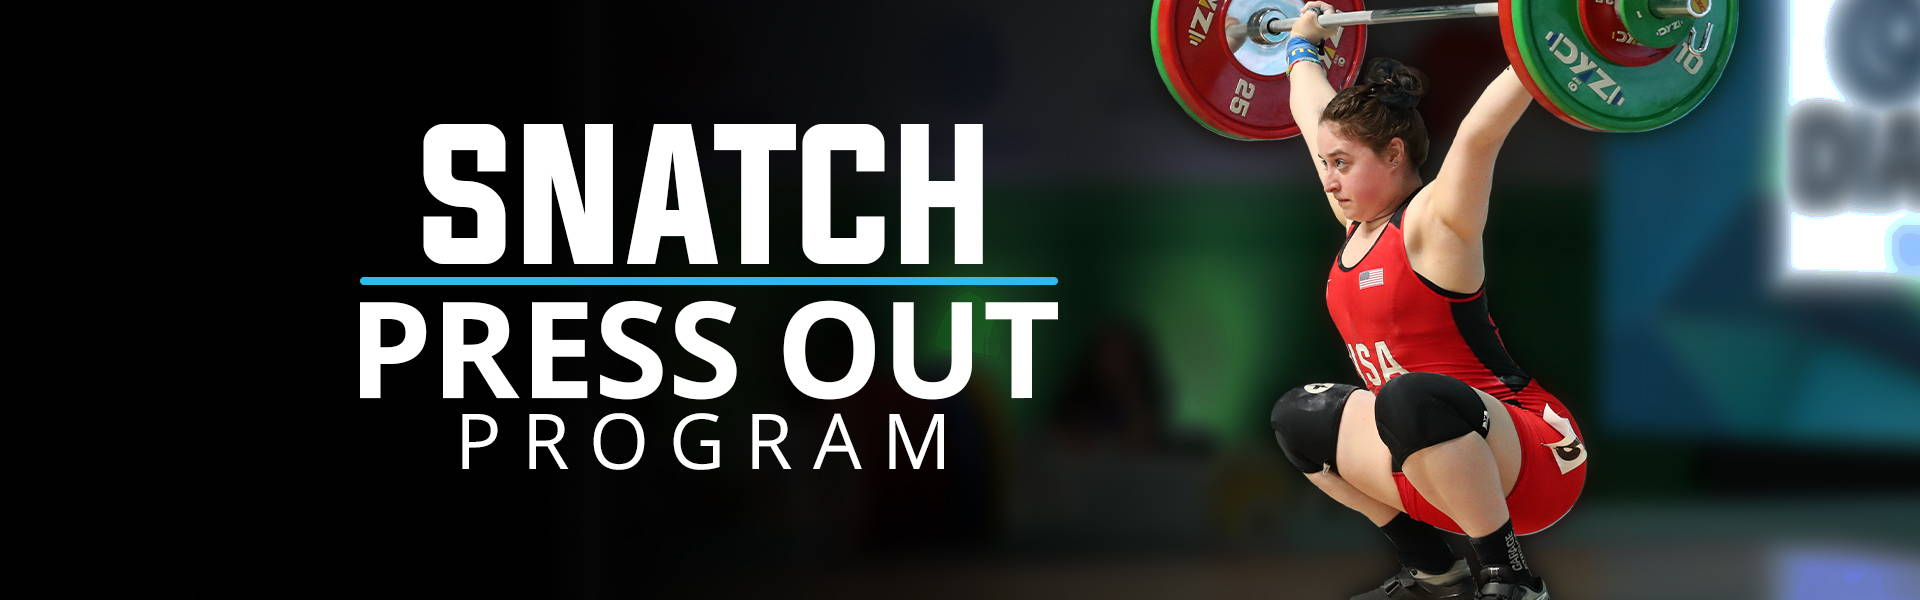 Snatch Press Out Olympic Weightlifting Program